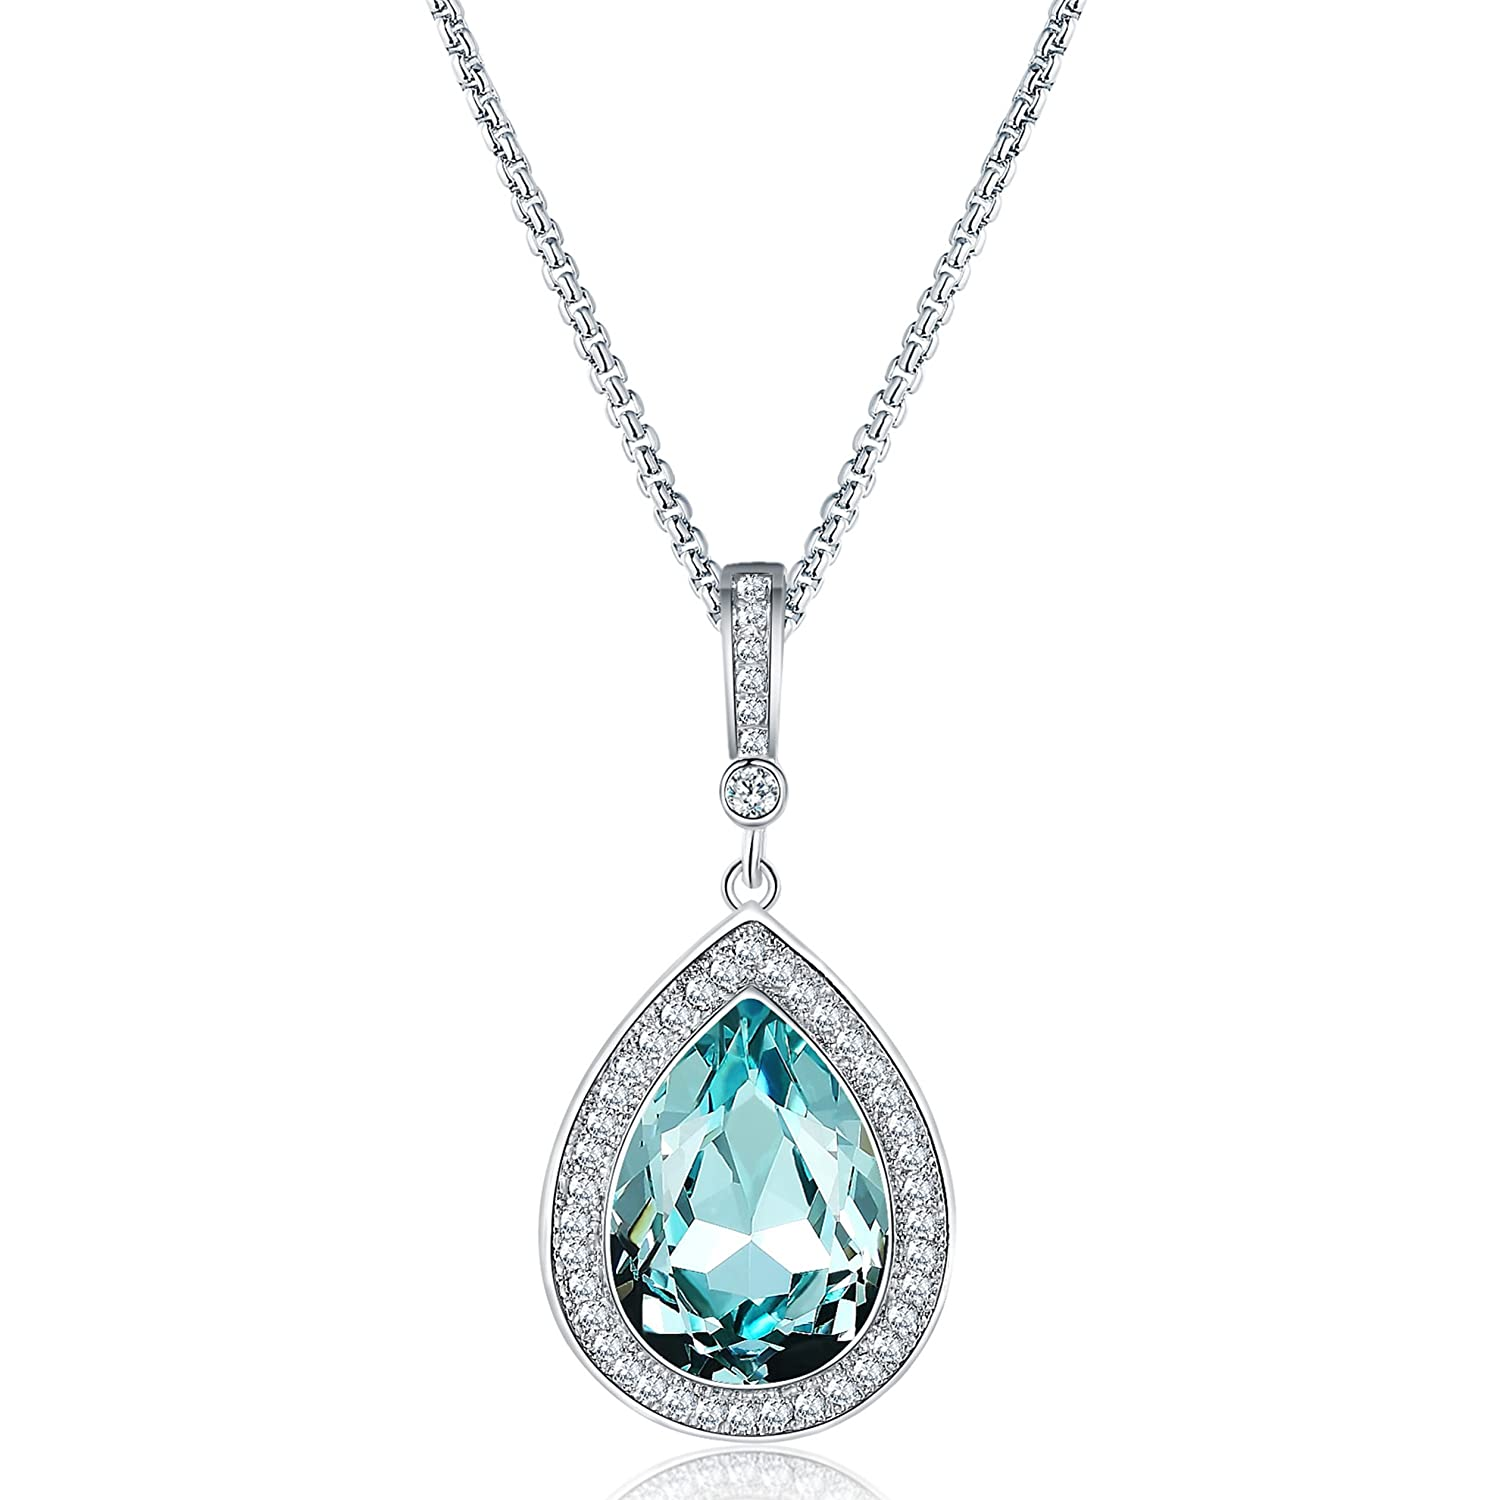 6a64d2ee1 Amazon.com: Mevecco Womens Girls Pendant Necklace with Swarovski Crystal  Water Drop Pendant Fashion Jewelry in The Gift Box-Drop-Aqua: Jewelry